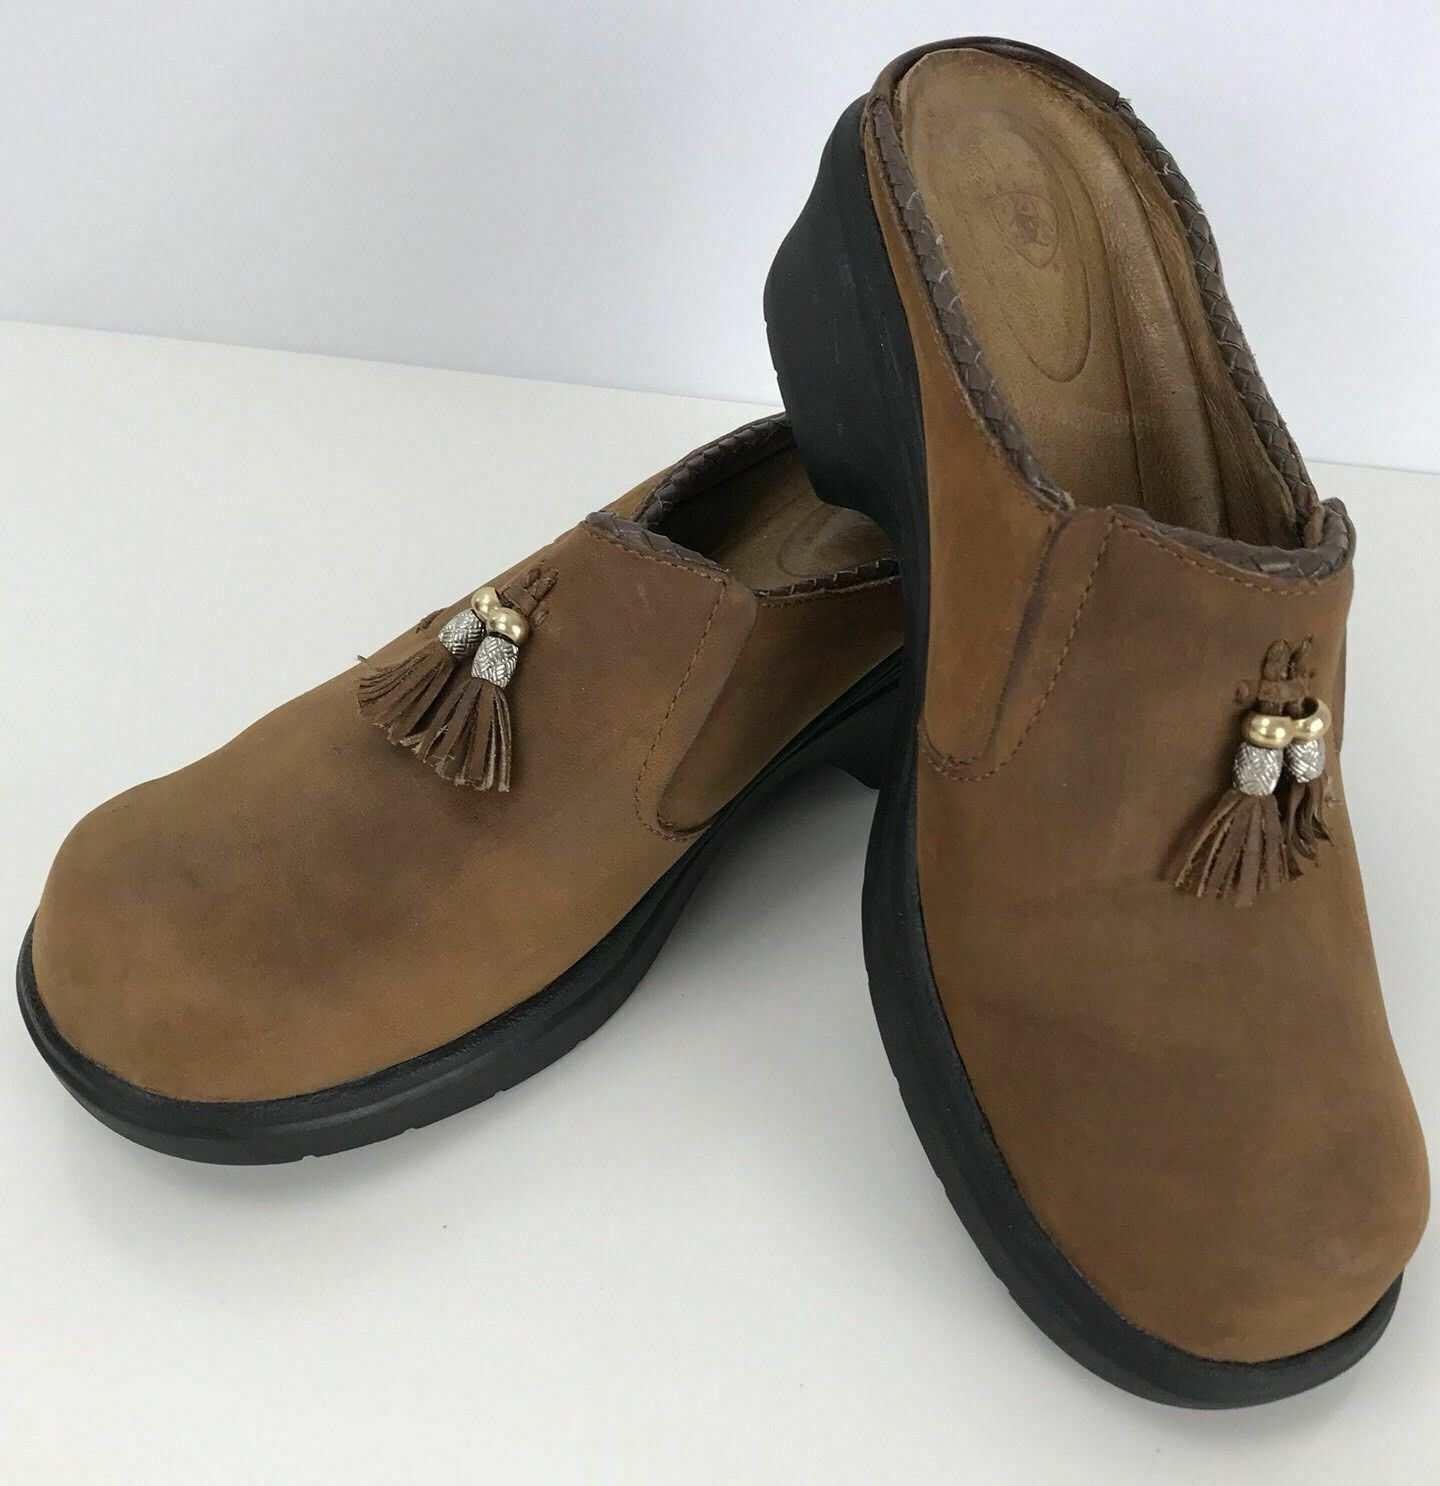 ARIAT Brown Tan Suede Leather Clogs Slip-on Mules Sz 7.5 Tassels Embellished